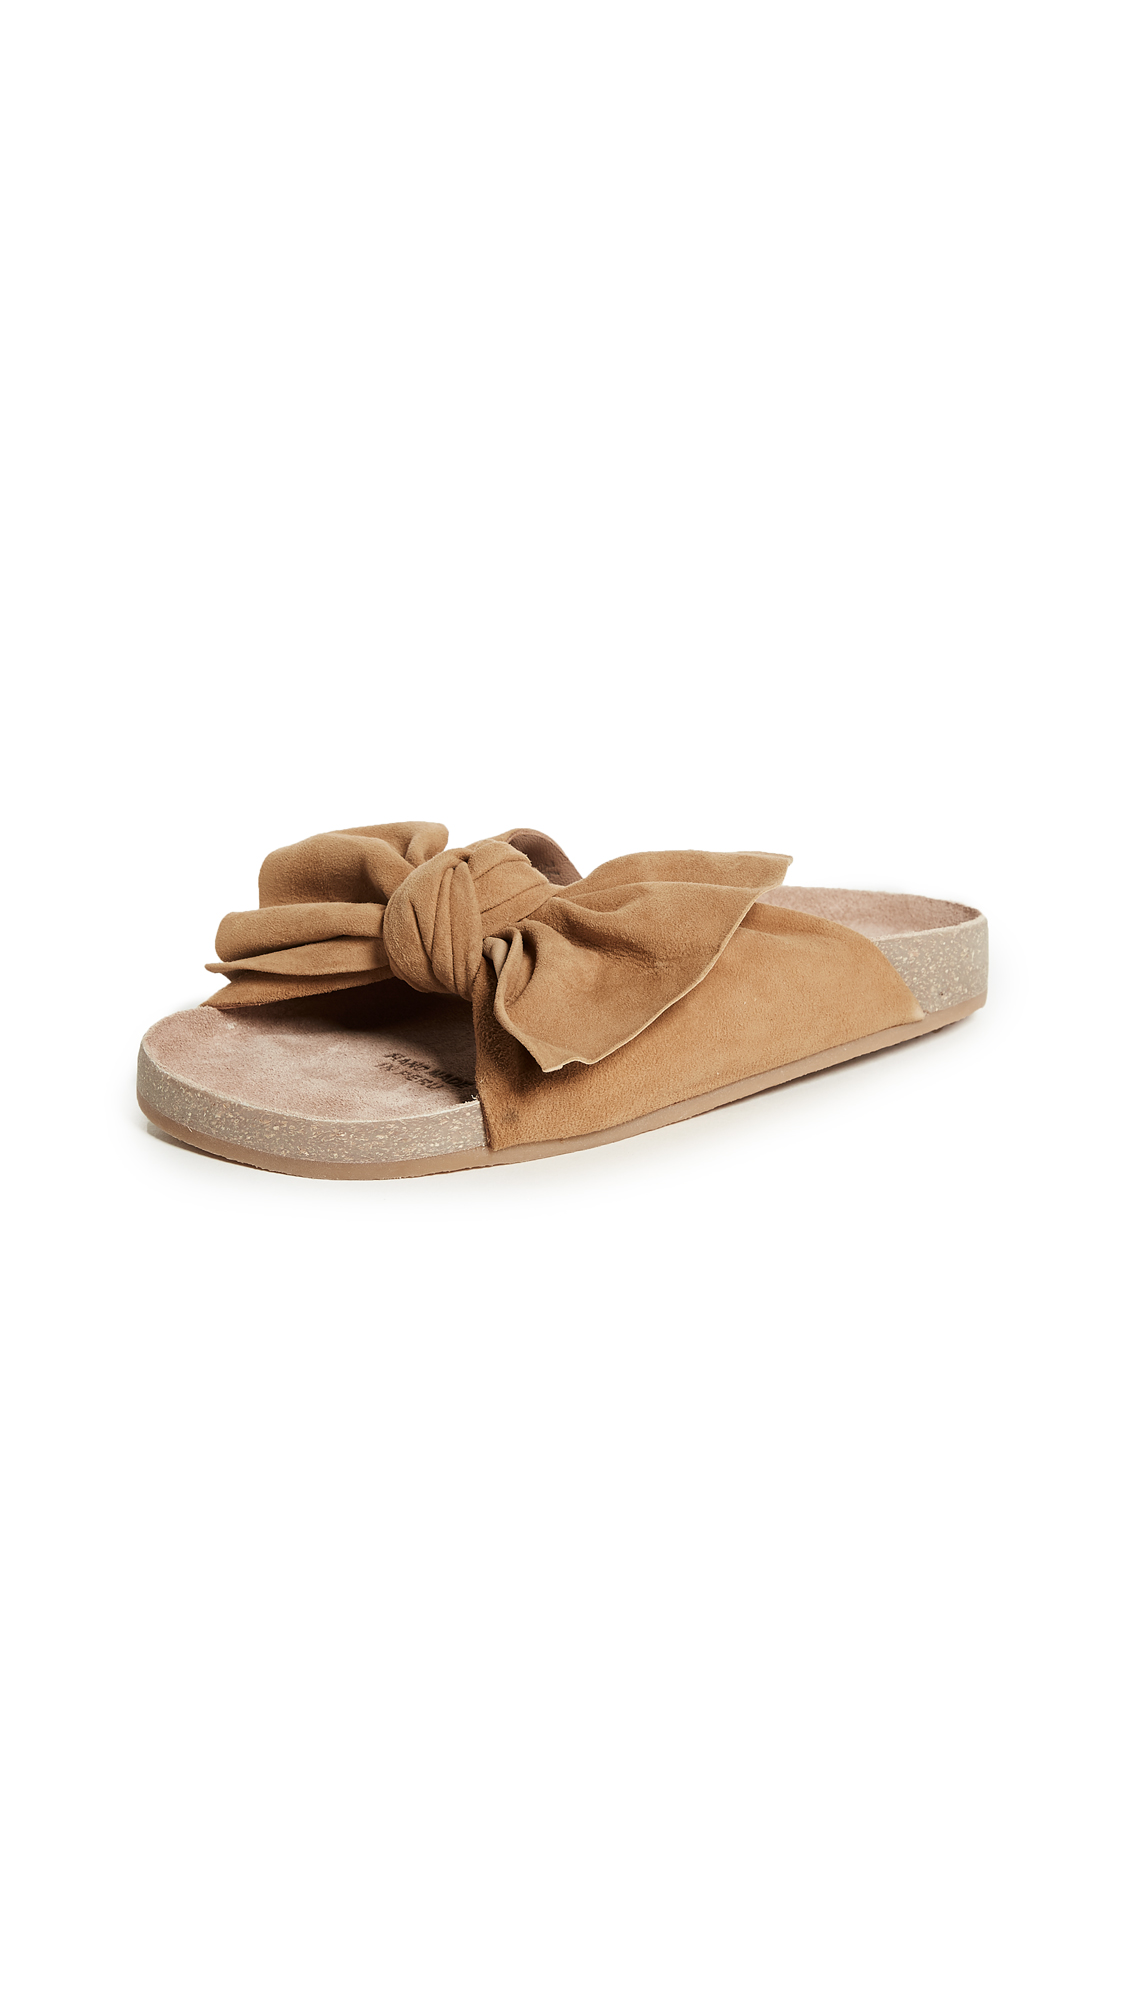 Ulla Johnson Ingrid Slides - Honey